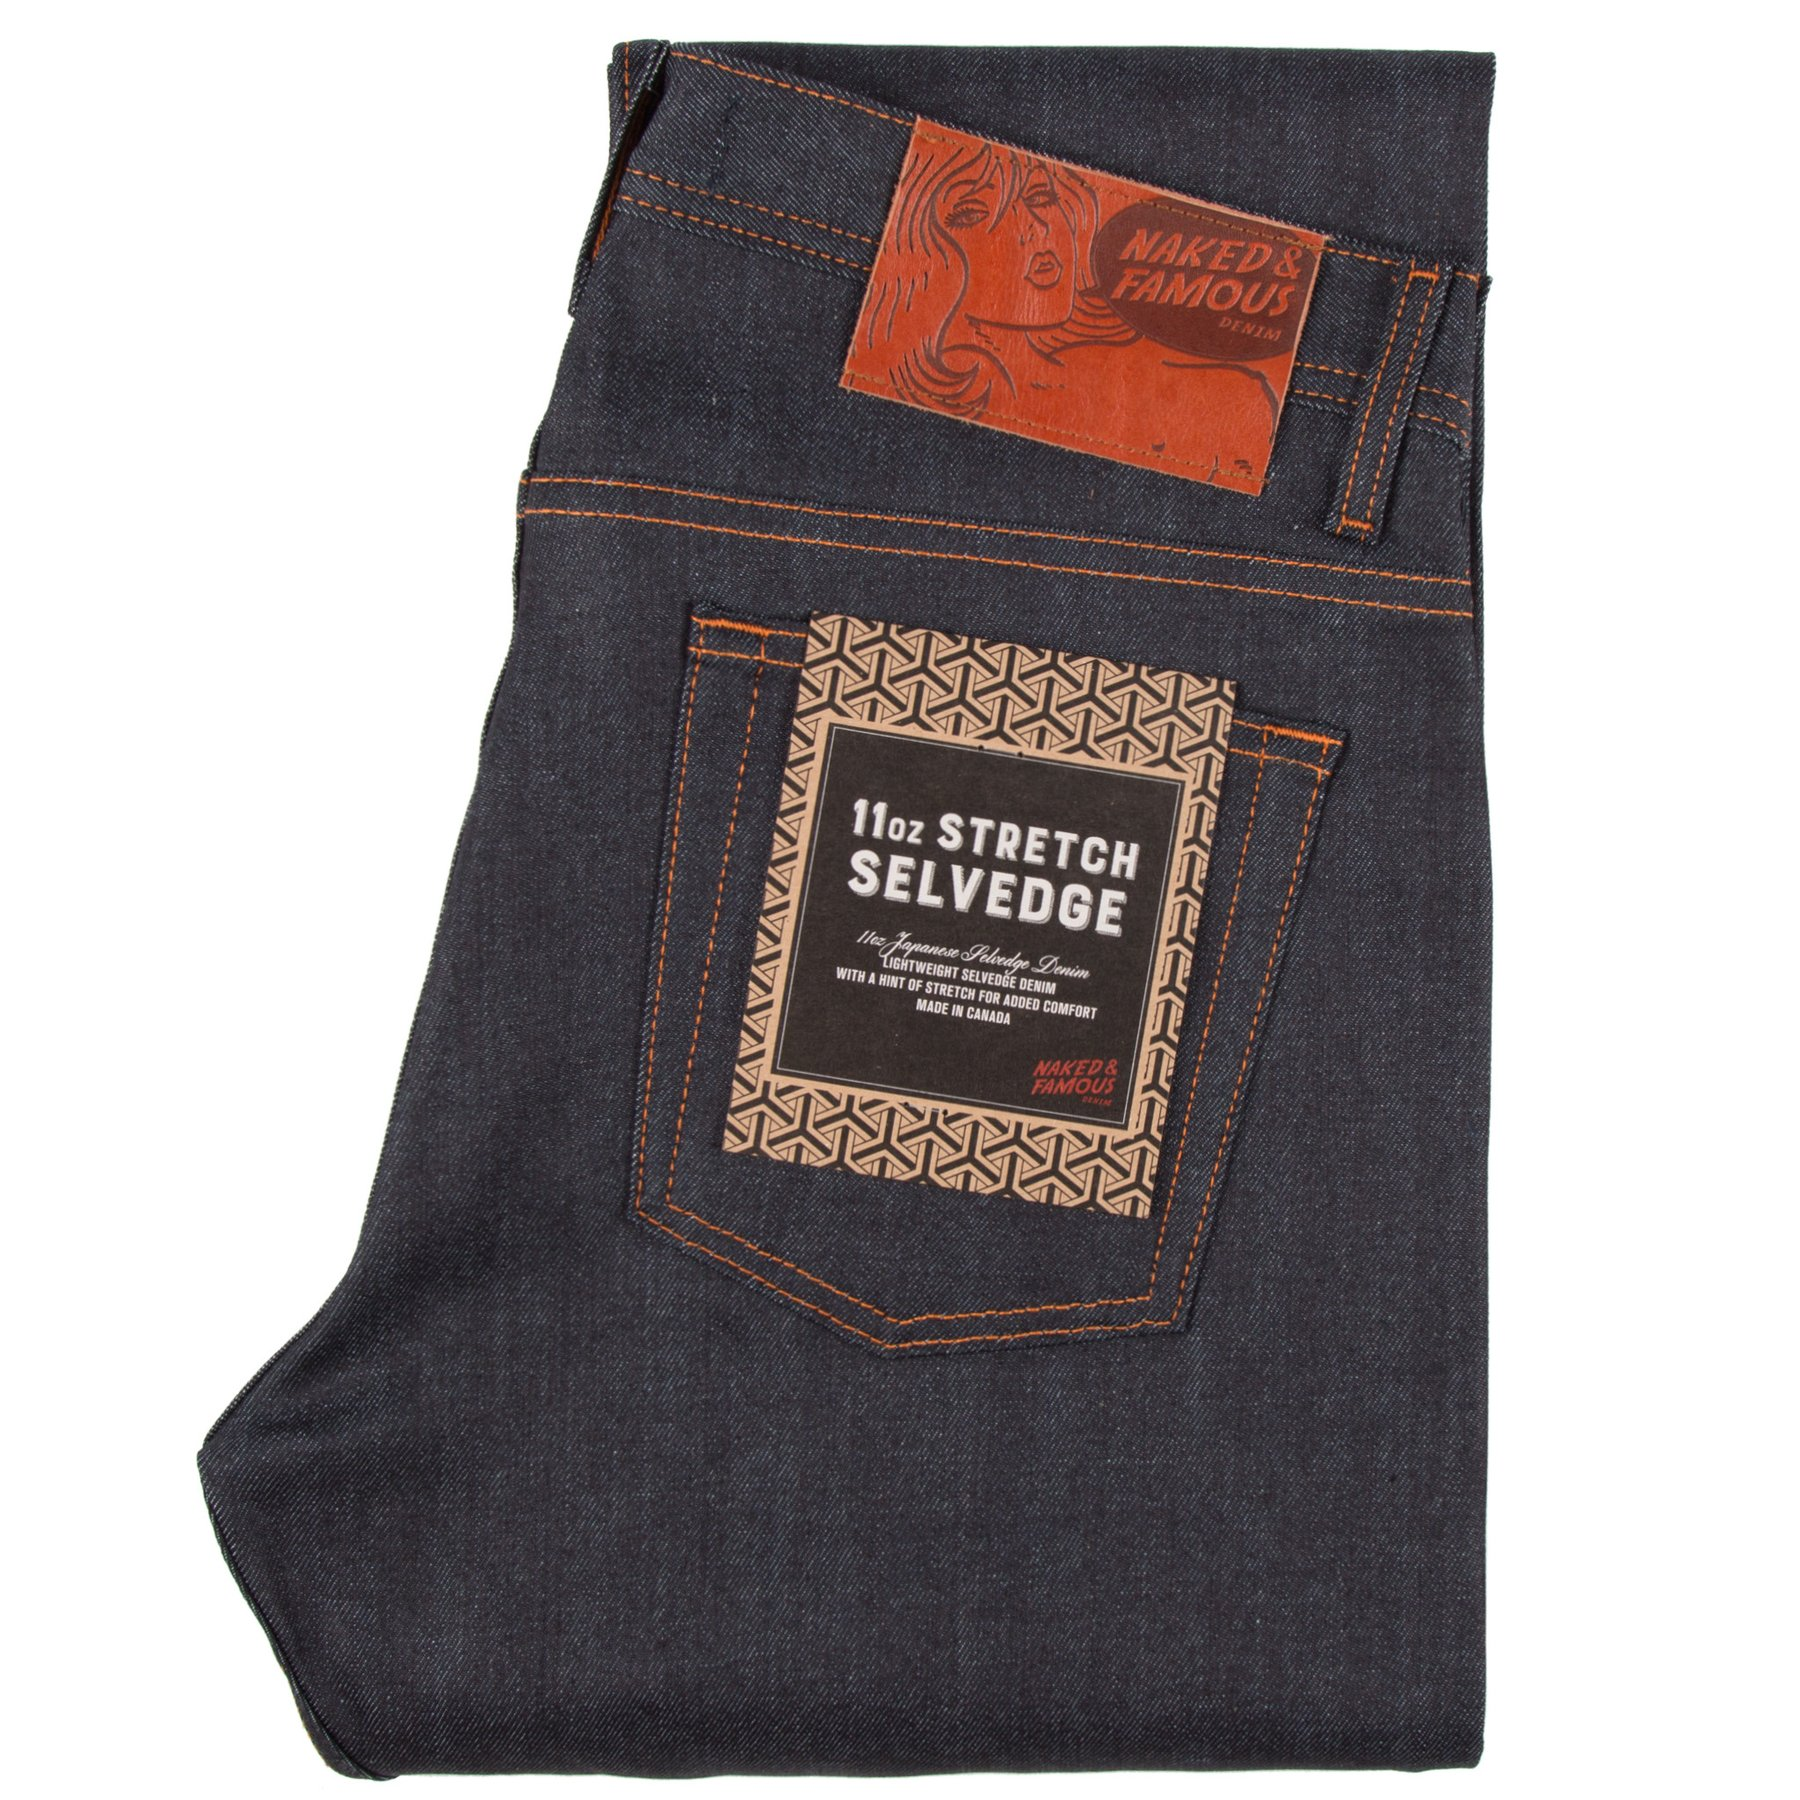 11oz stretch selvedge - Super Guy / Weird Guy / Easy Guy